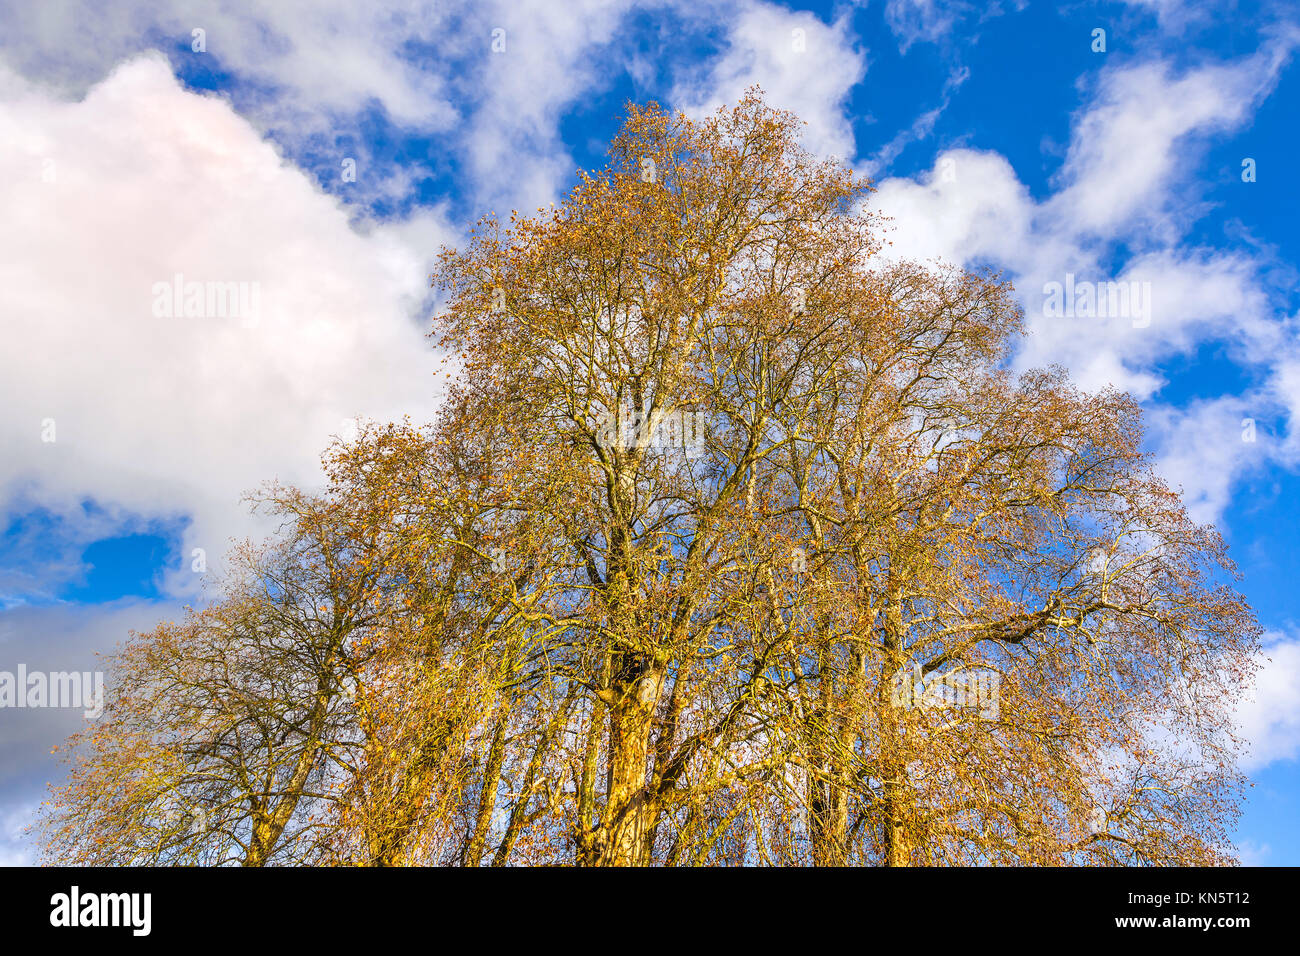 Bare branches of tall Plane trees. - Stock Image